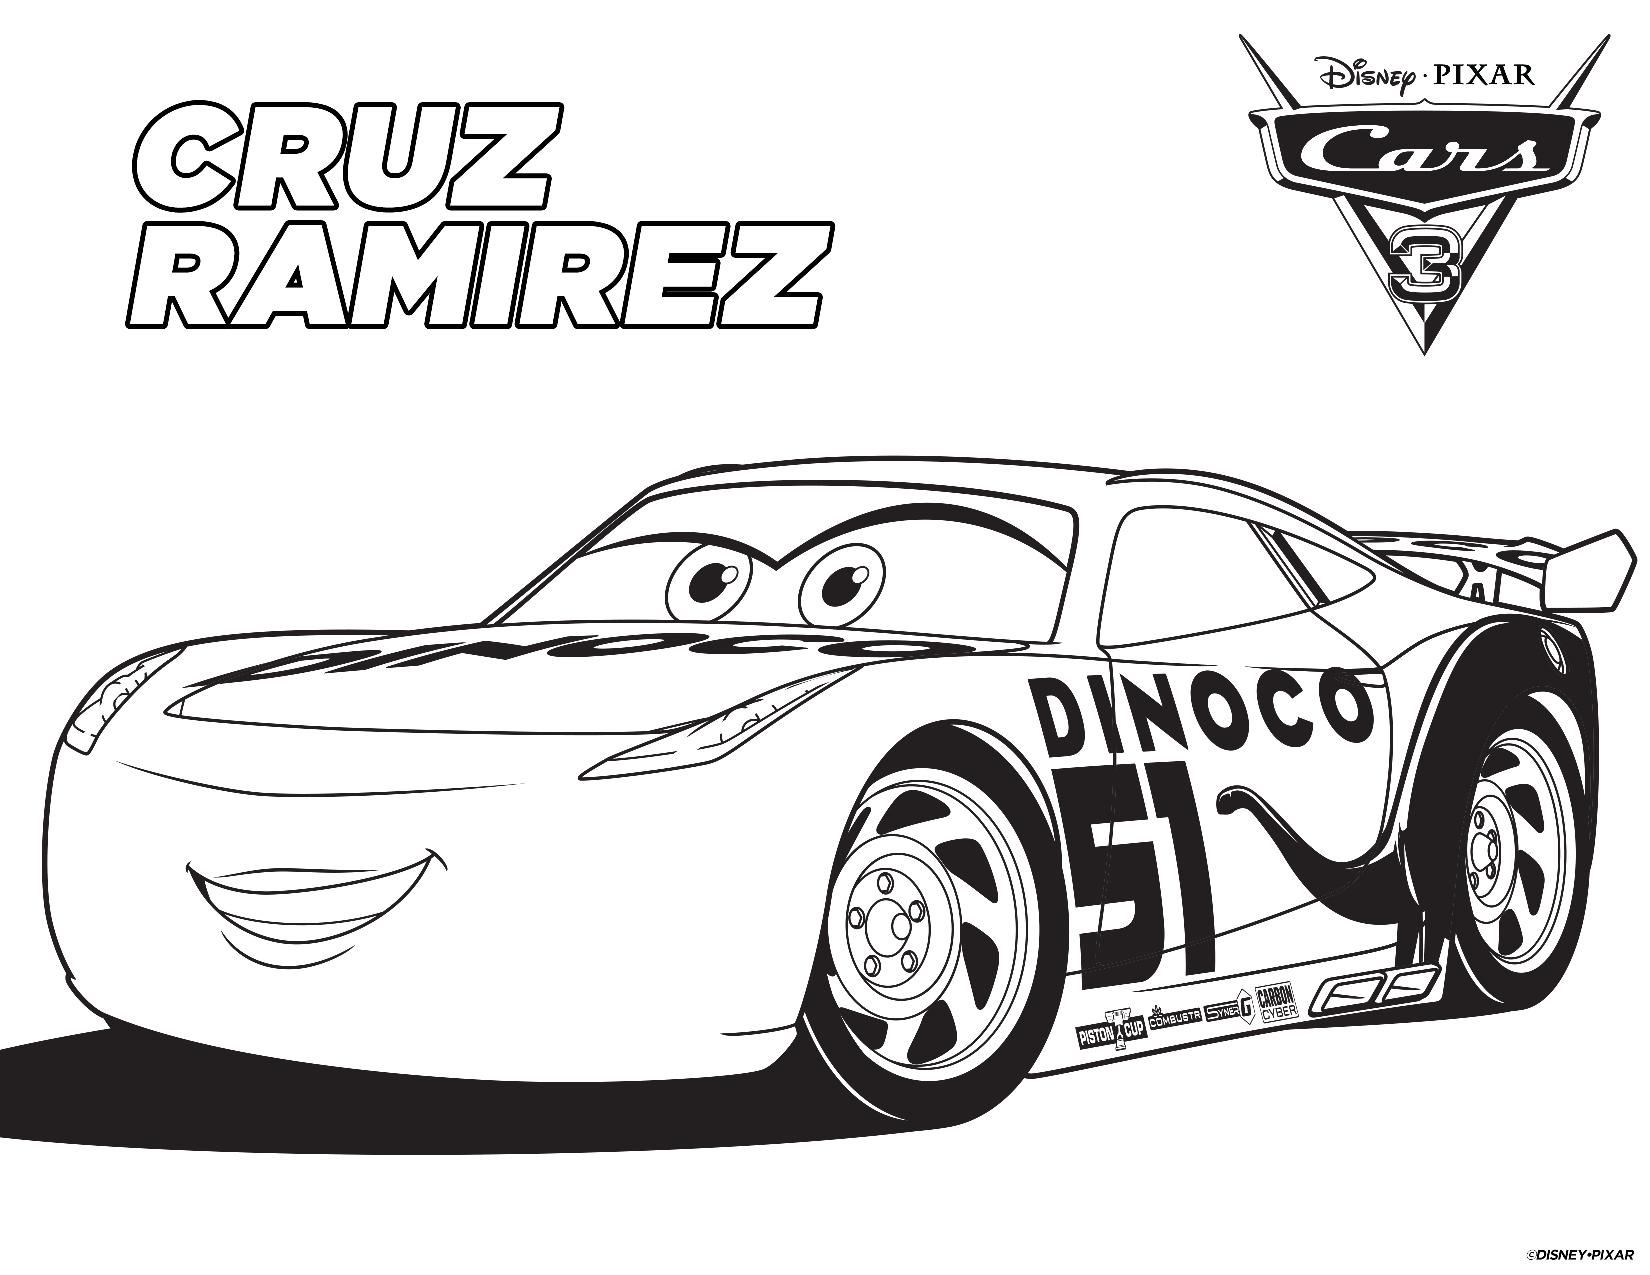 Free coloring sheets cars - Cruz Ramirez Coloring Page